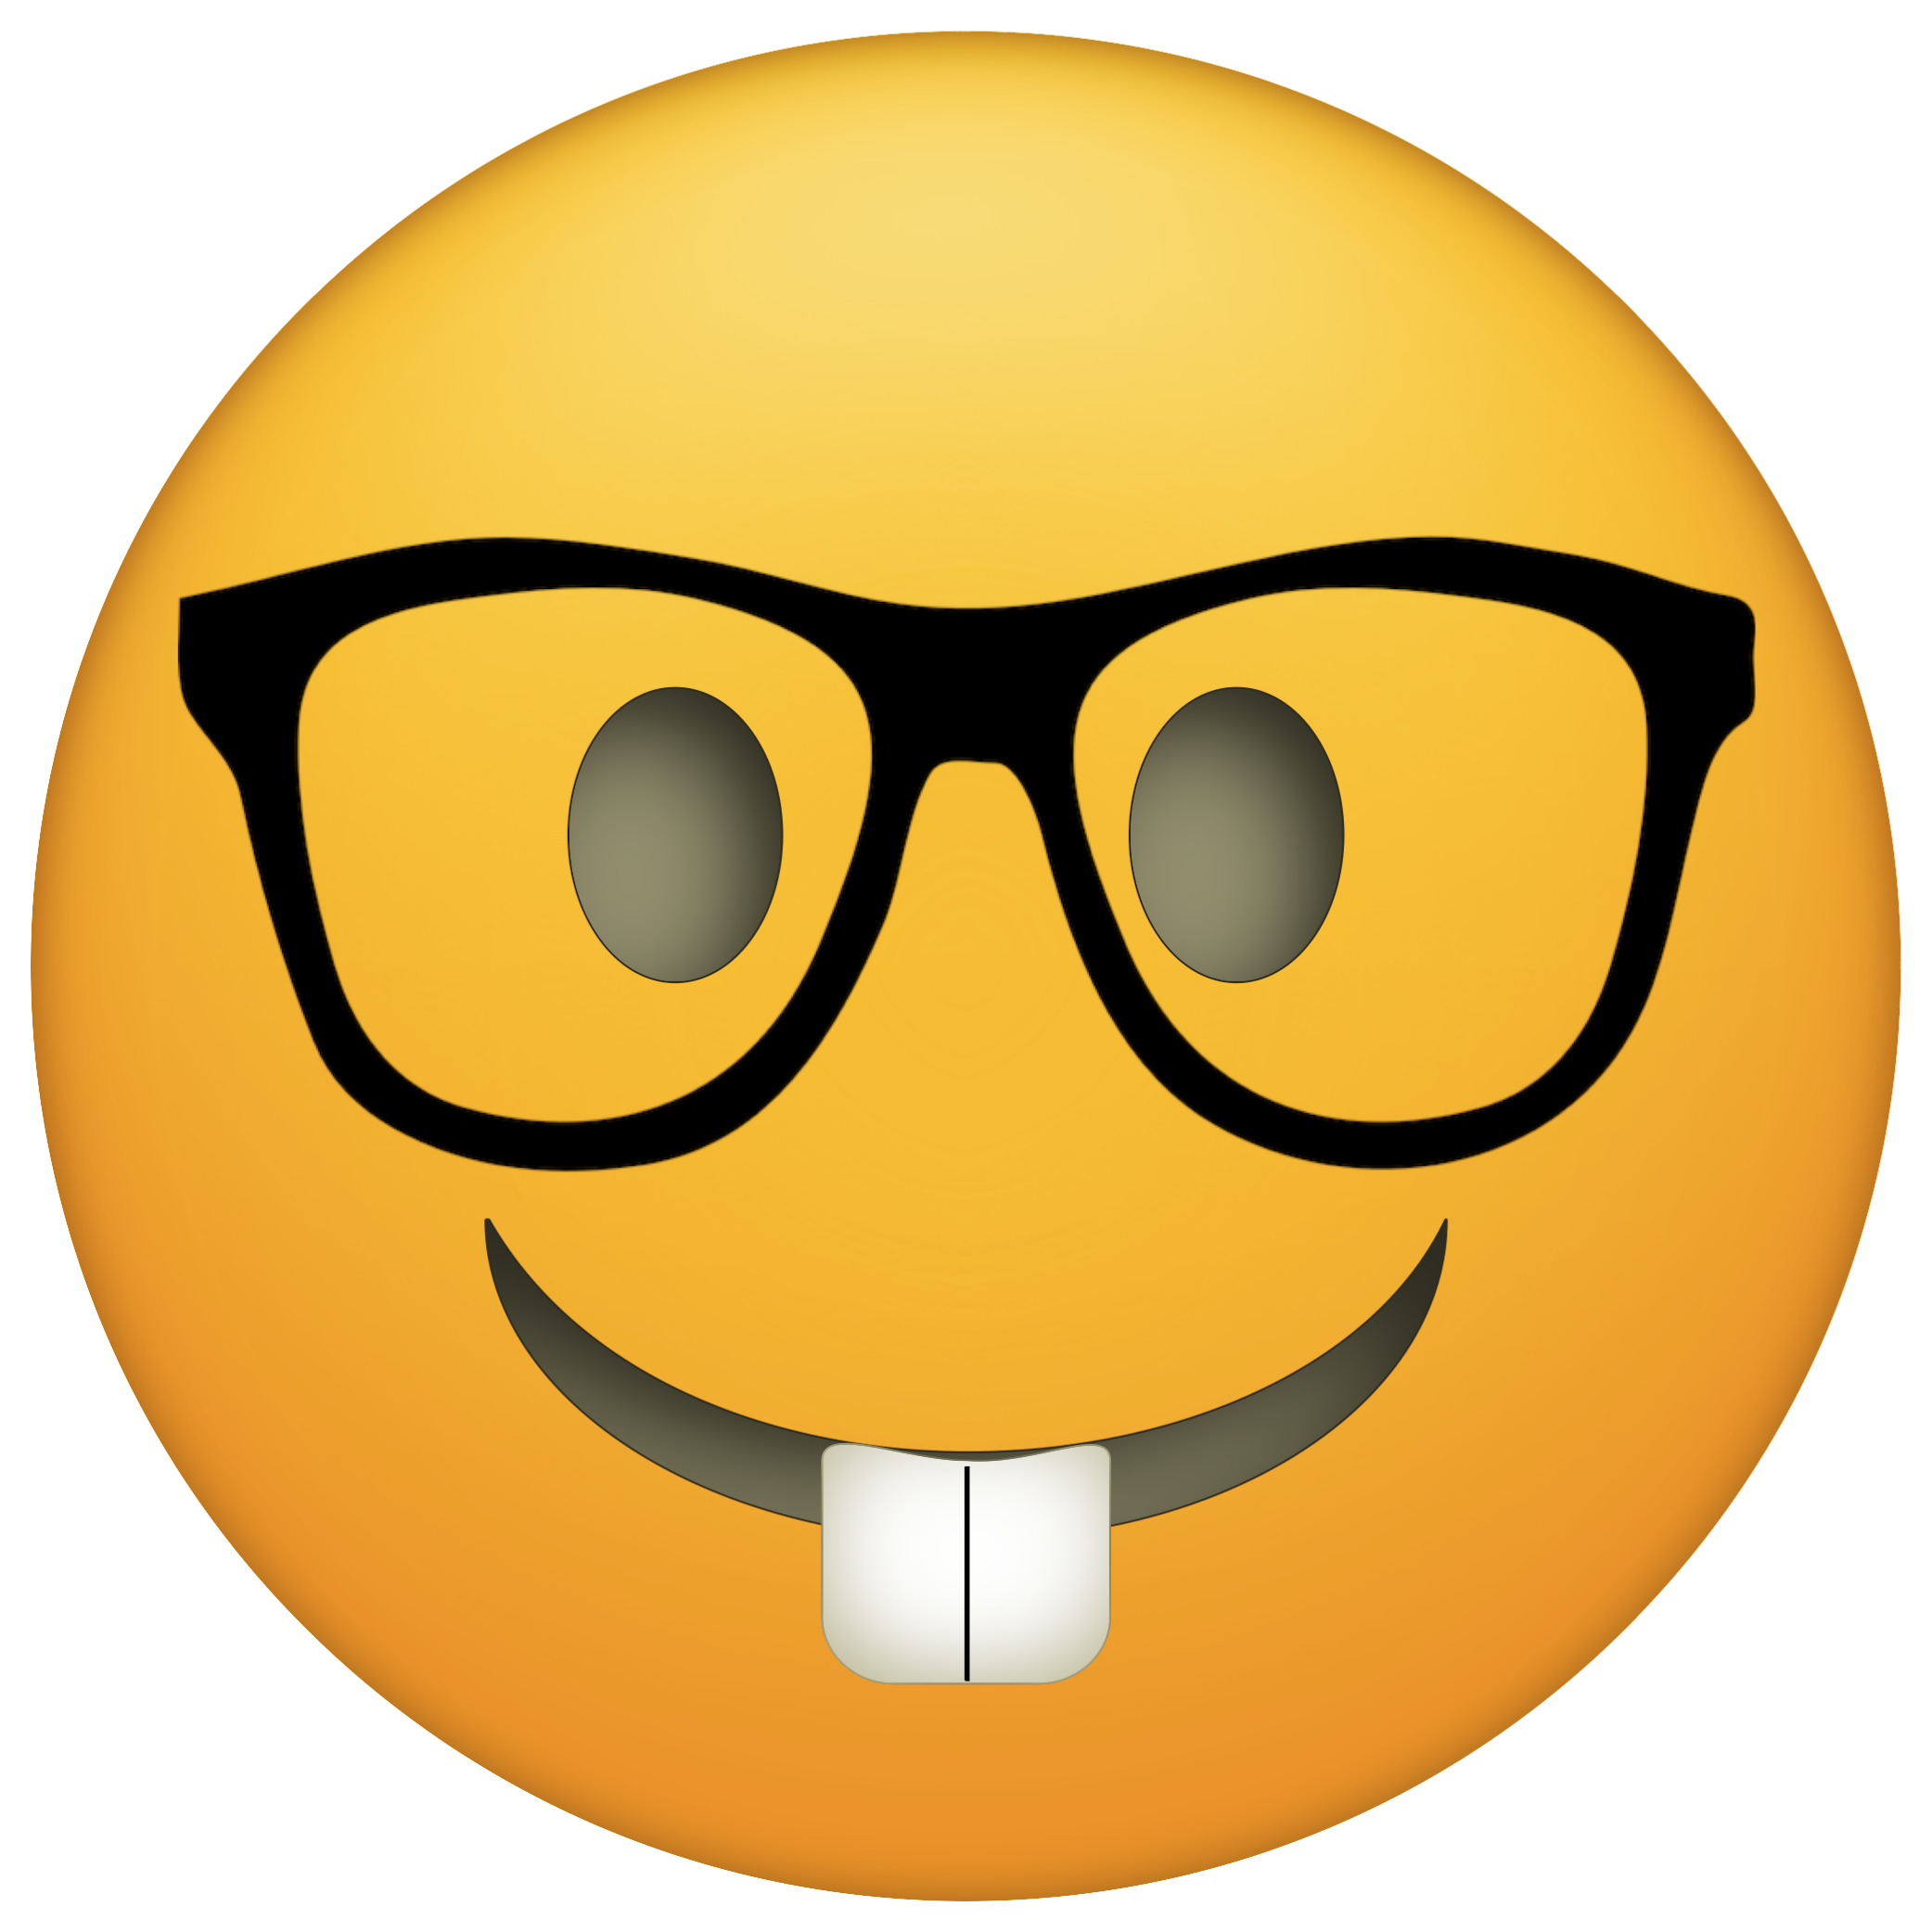 Sunglasses Emoji PNG Images Transparent Free Download.